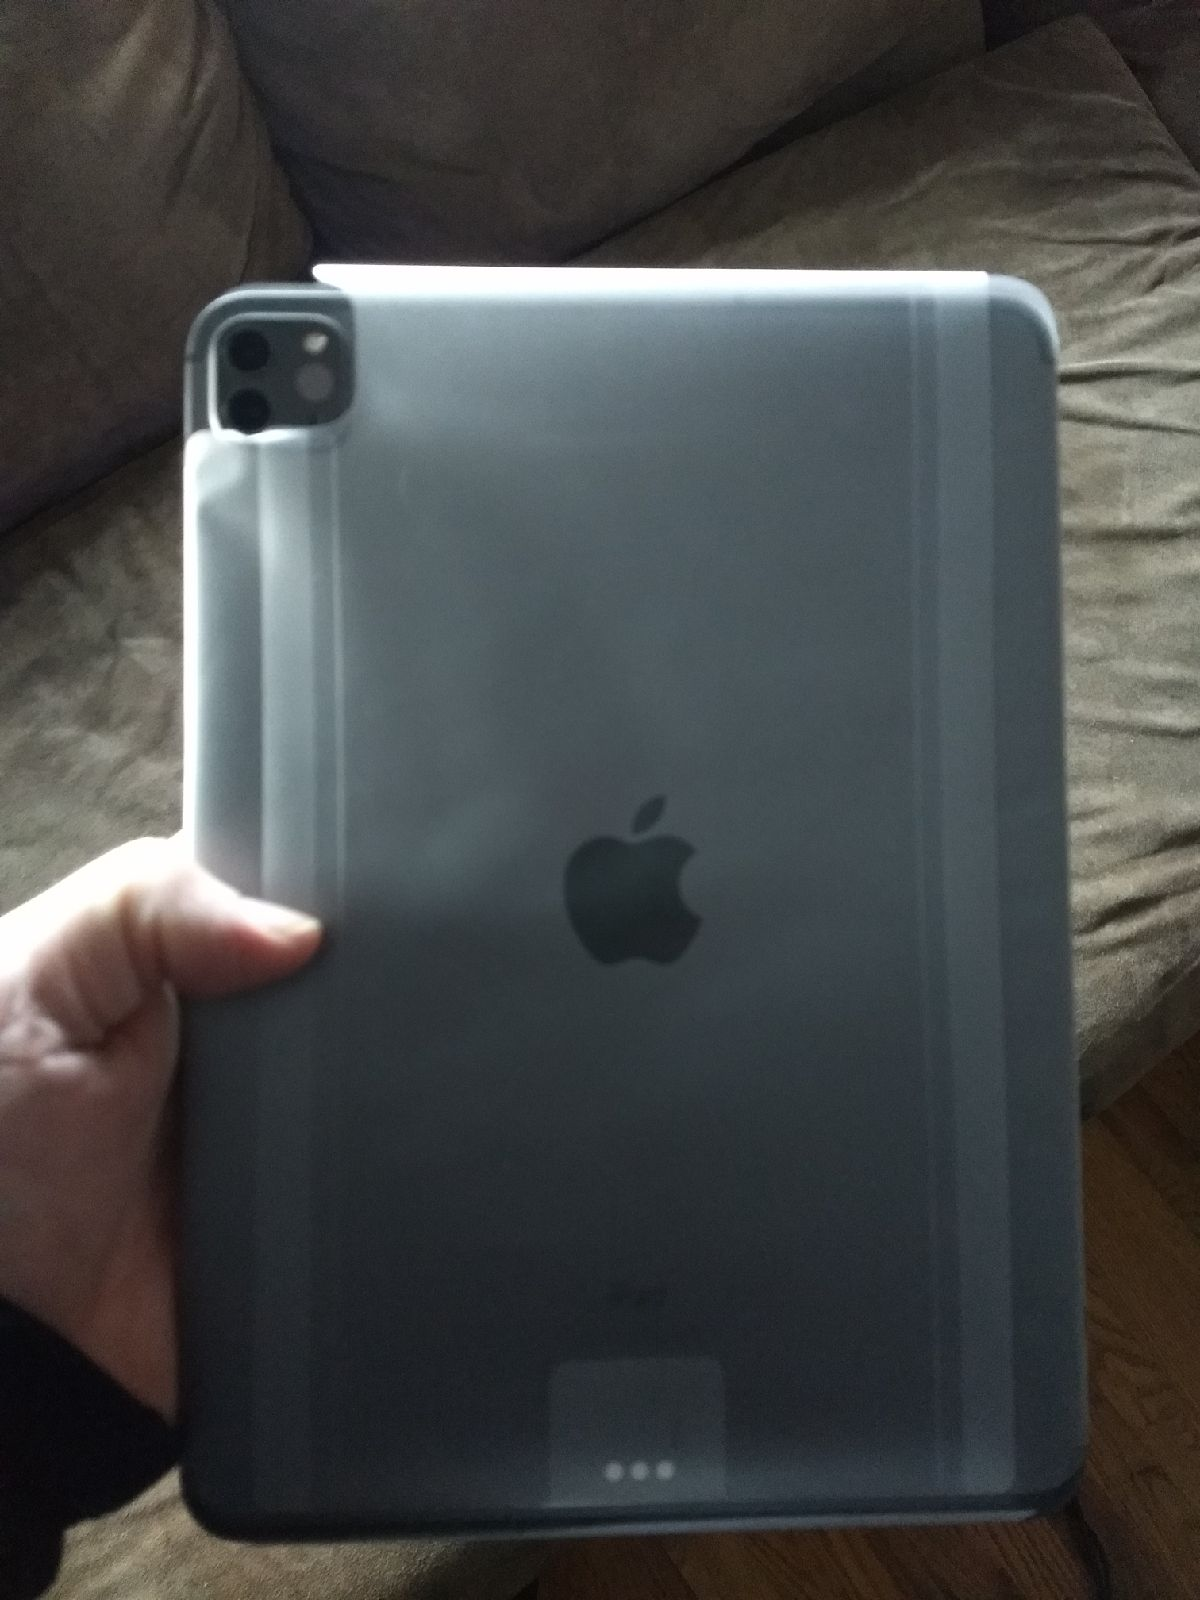 ipad pro 11 inch (Wifi and cellular)